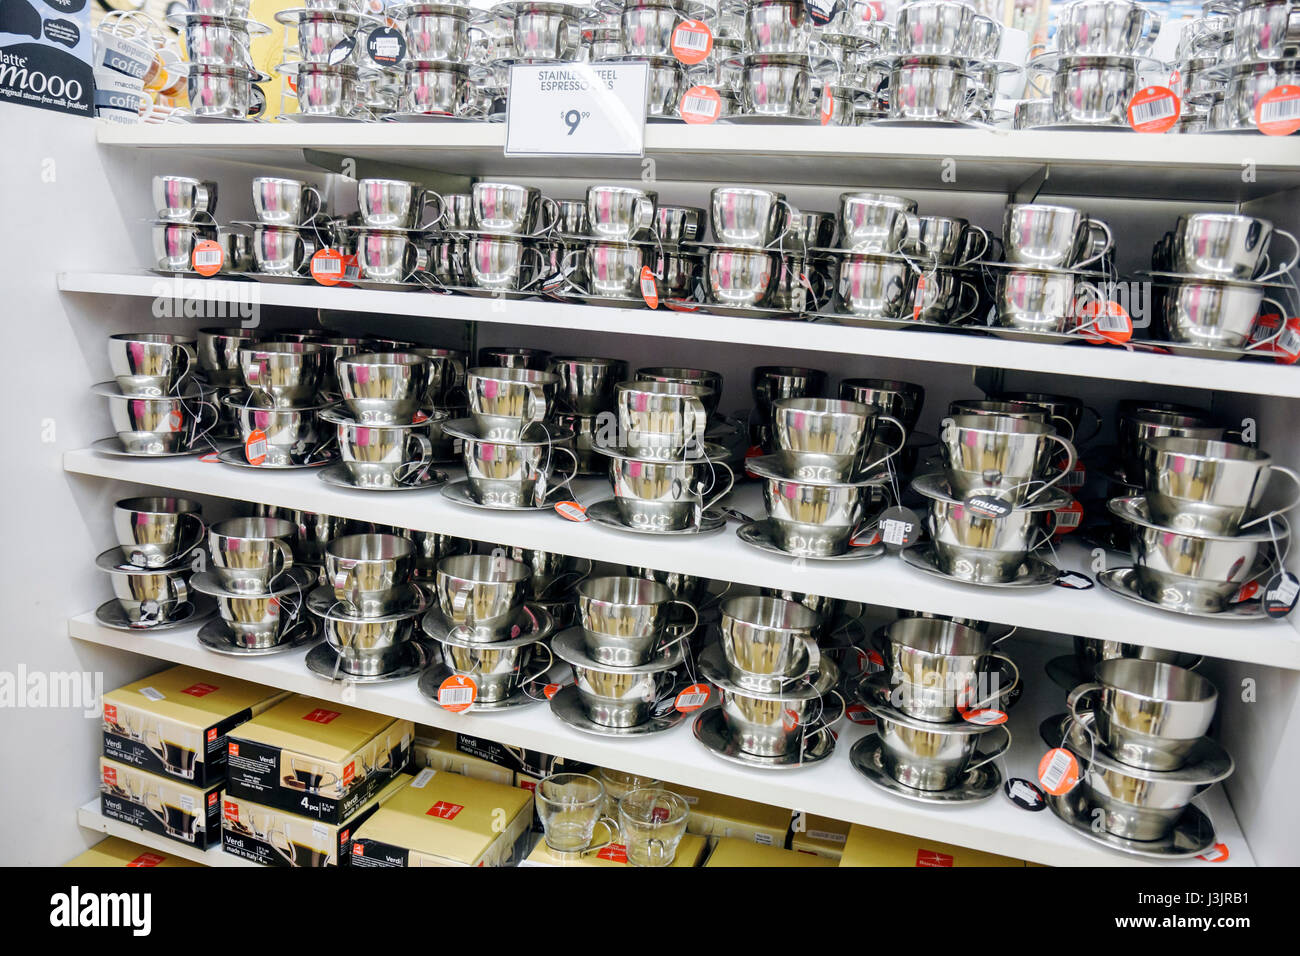 Miami Florida Dadeland Bed Bath and Beyond house wares ...